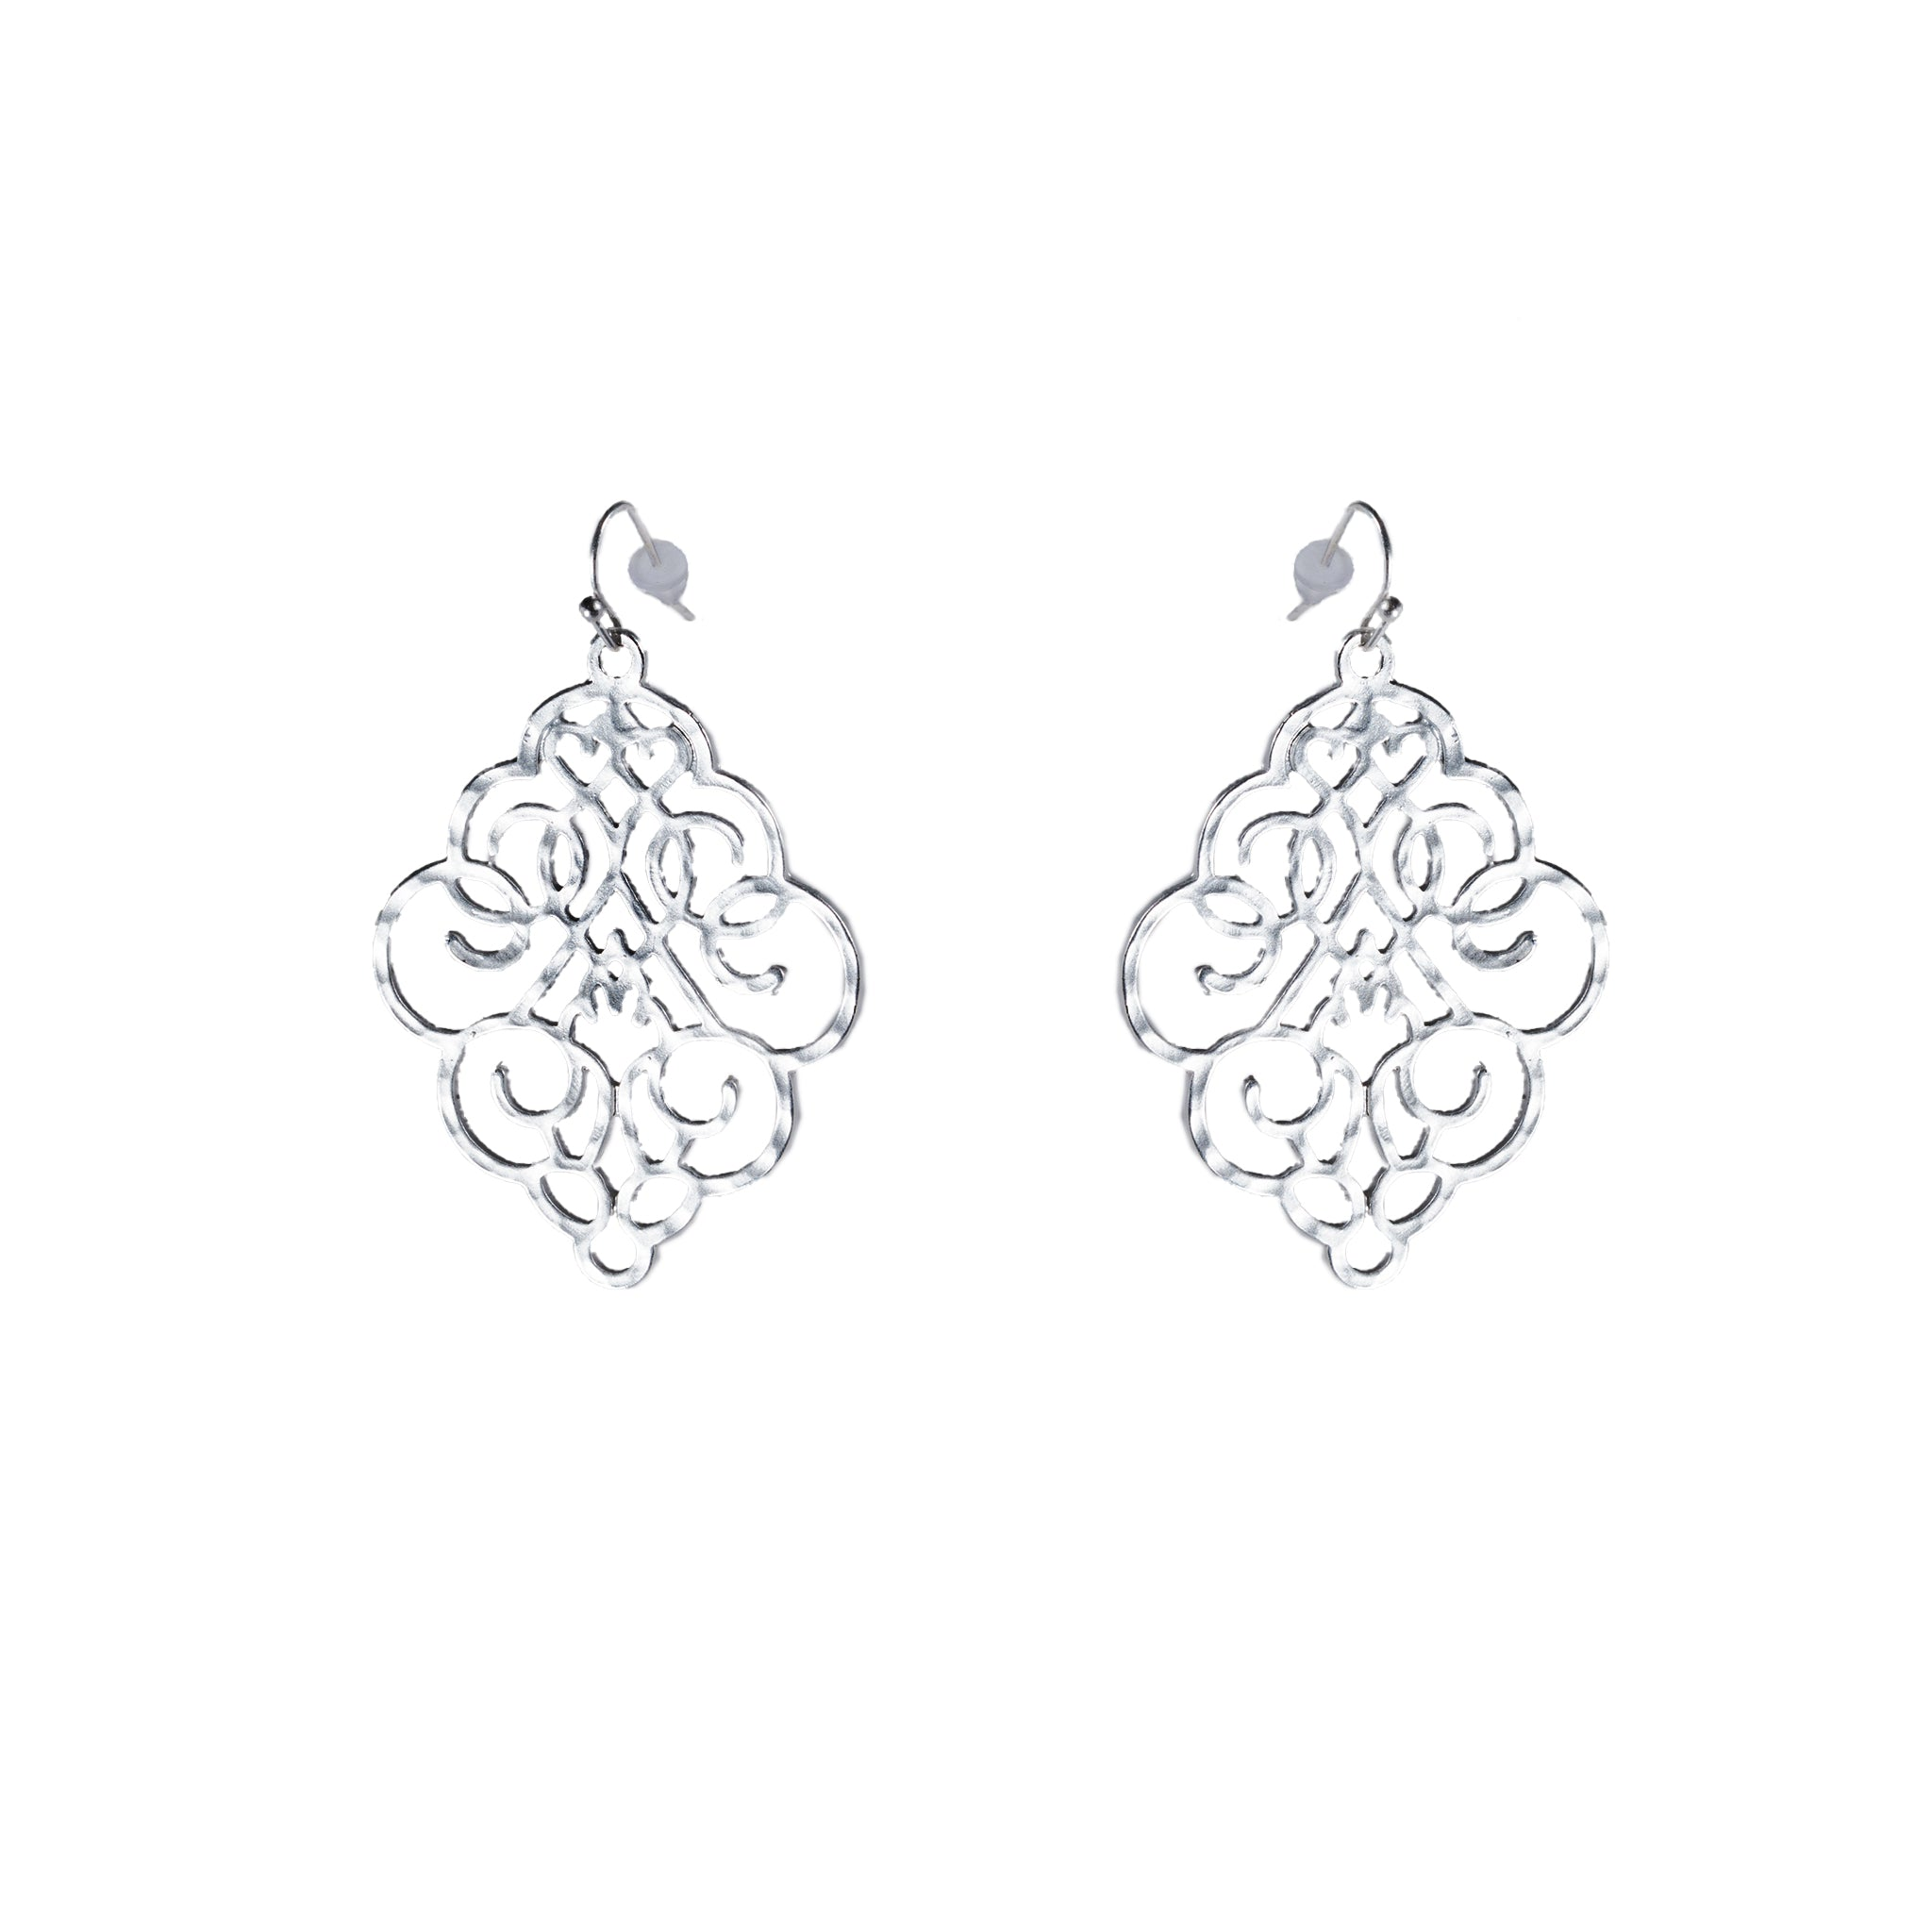 pin large in filigree made sterling earrings israel silver